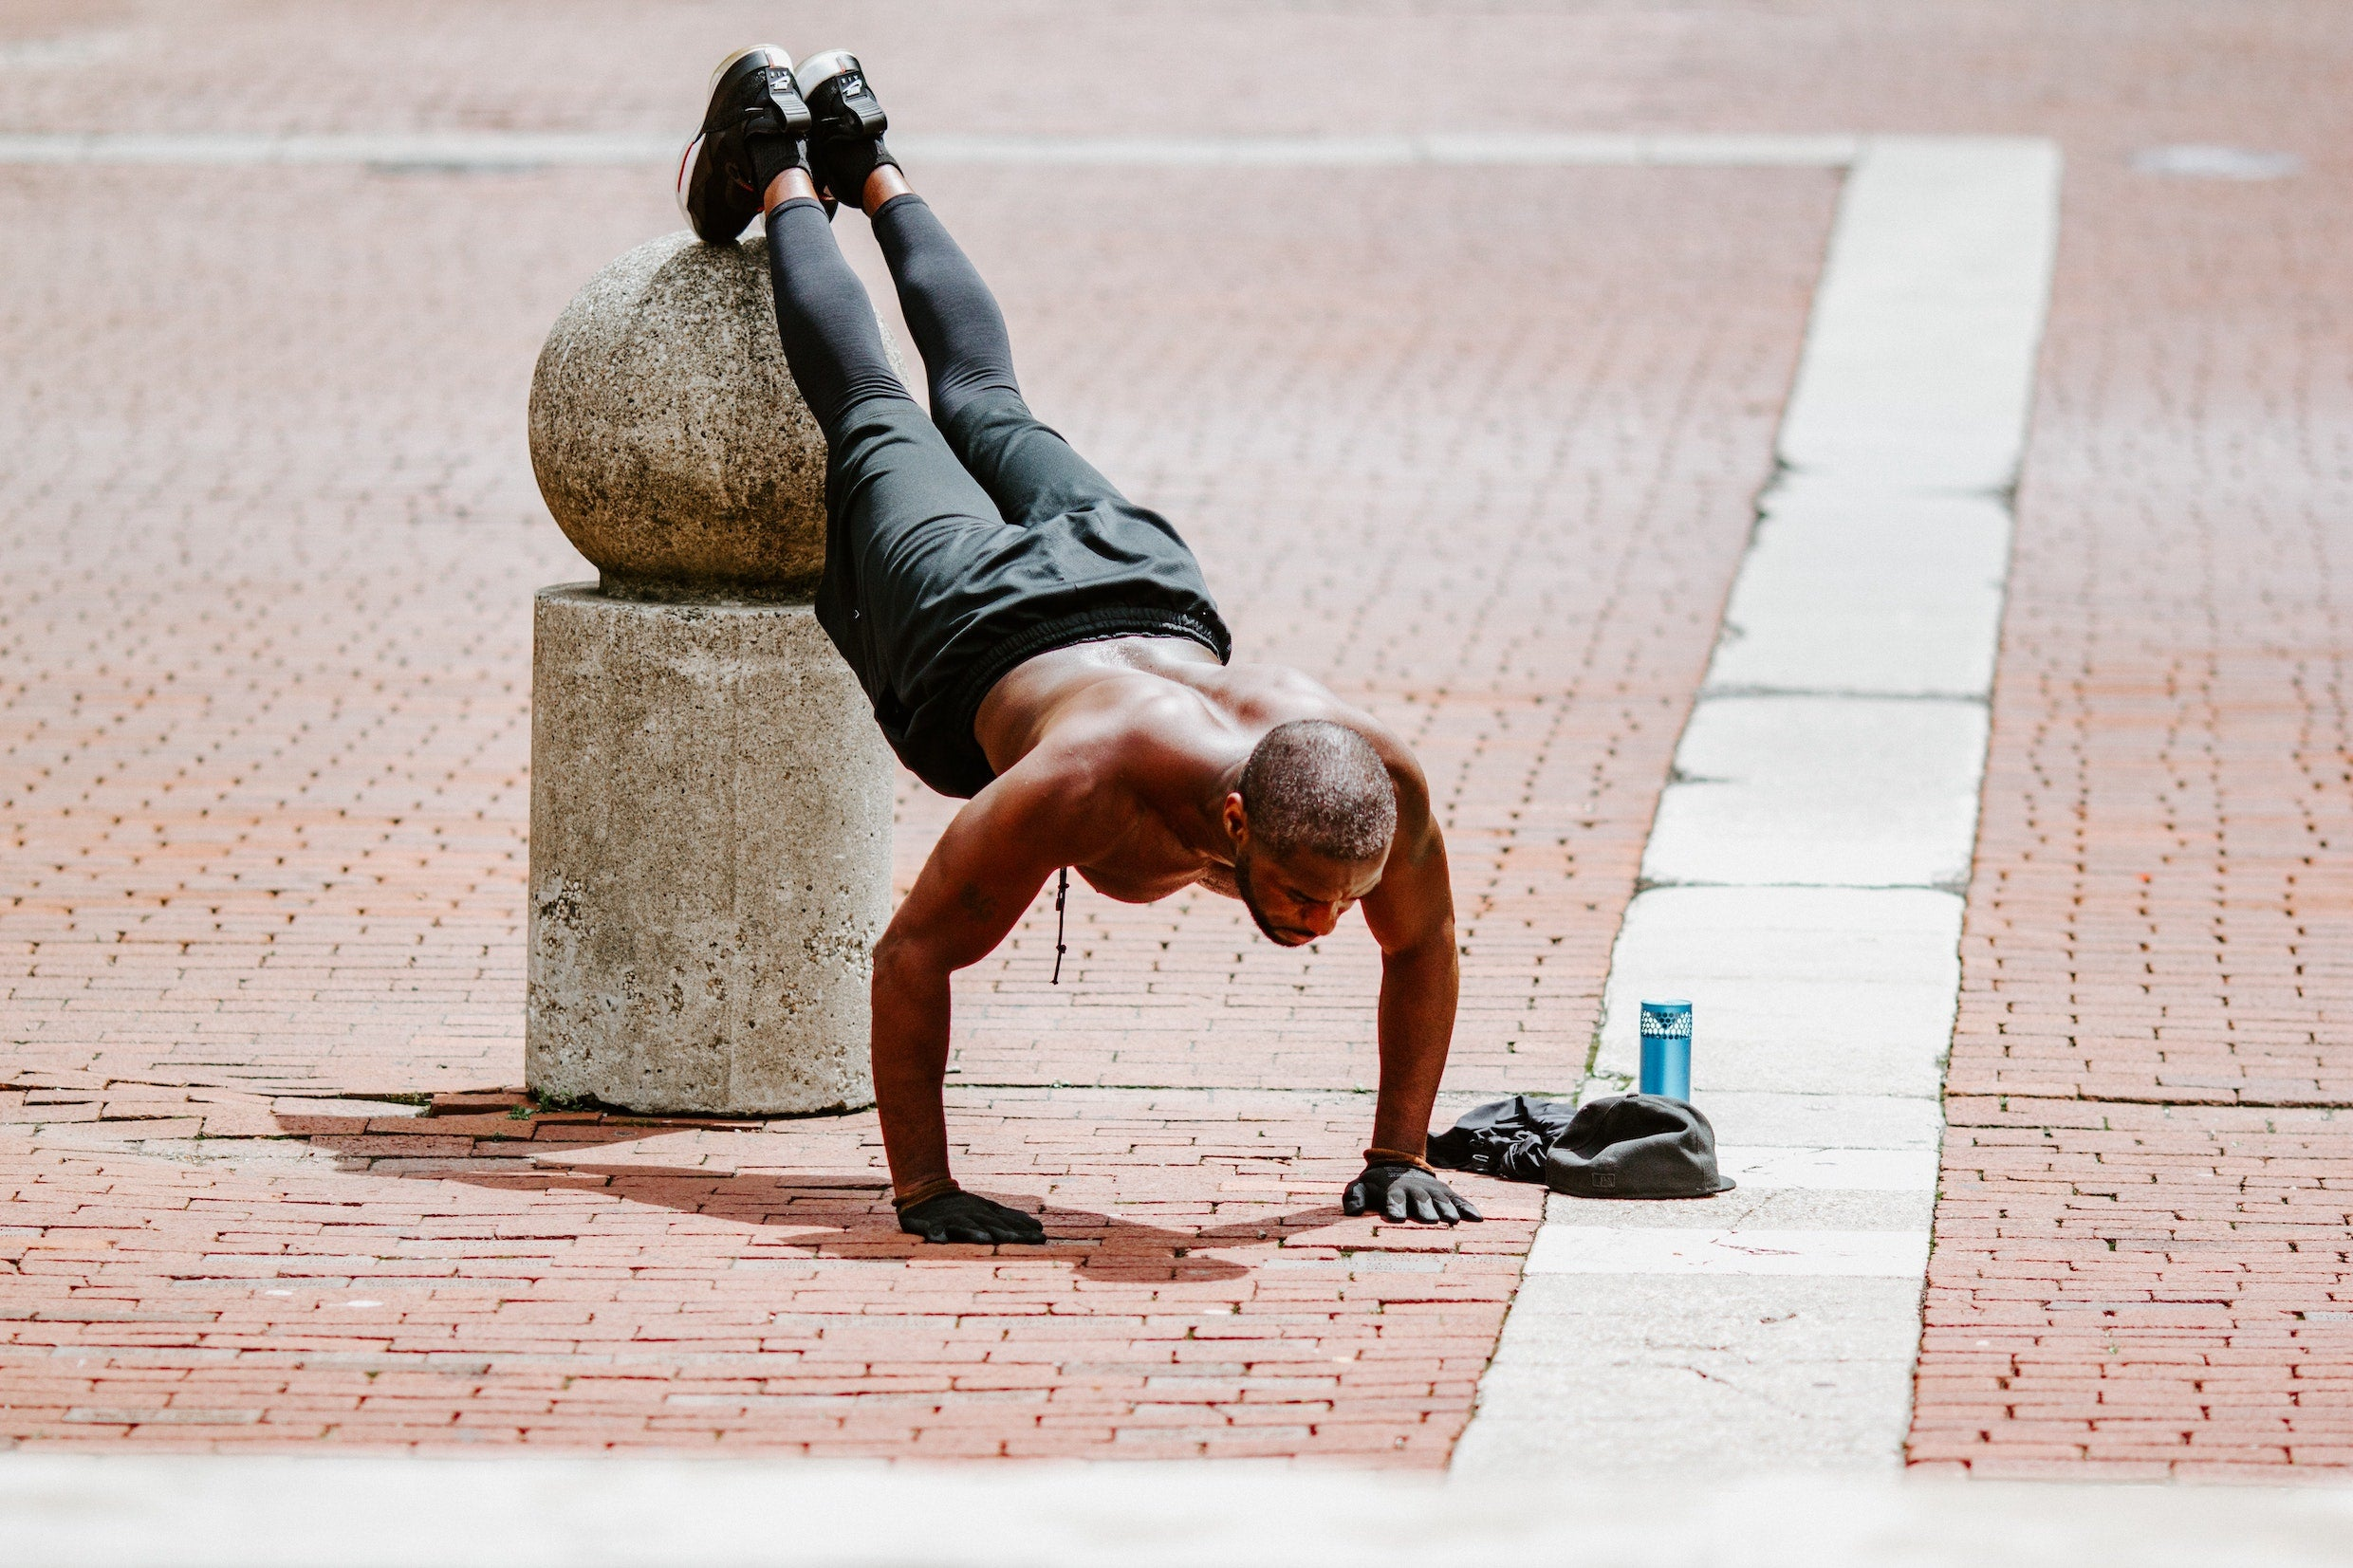 Man doing elevated push ups